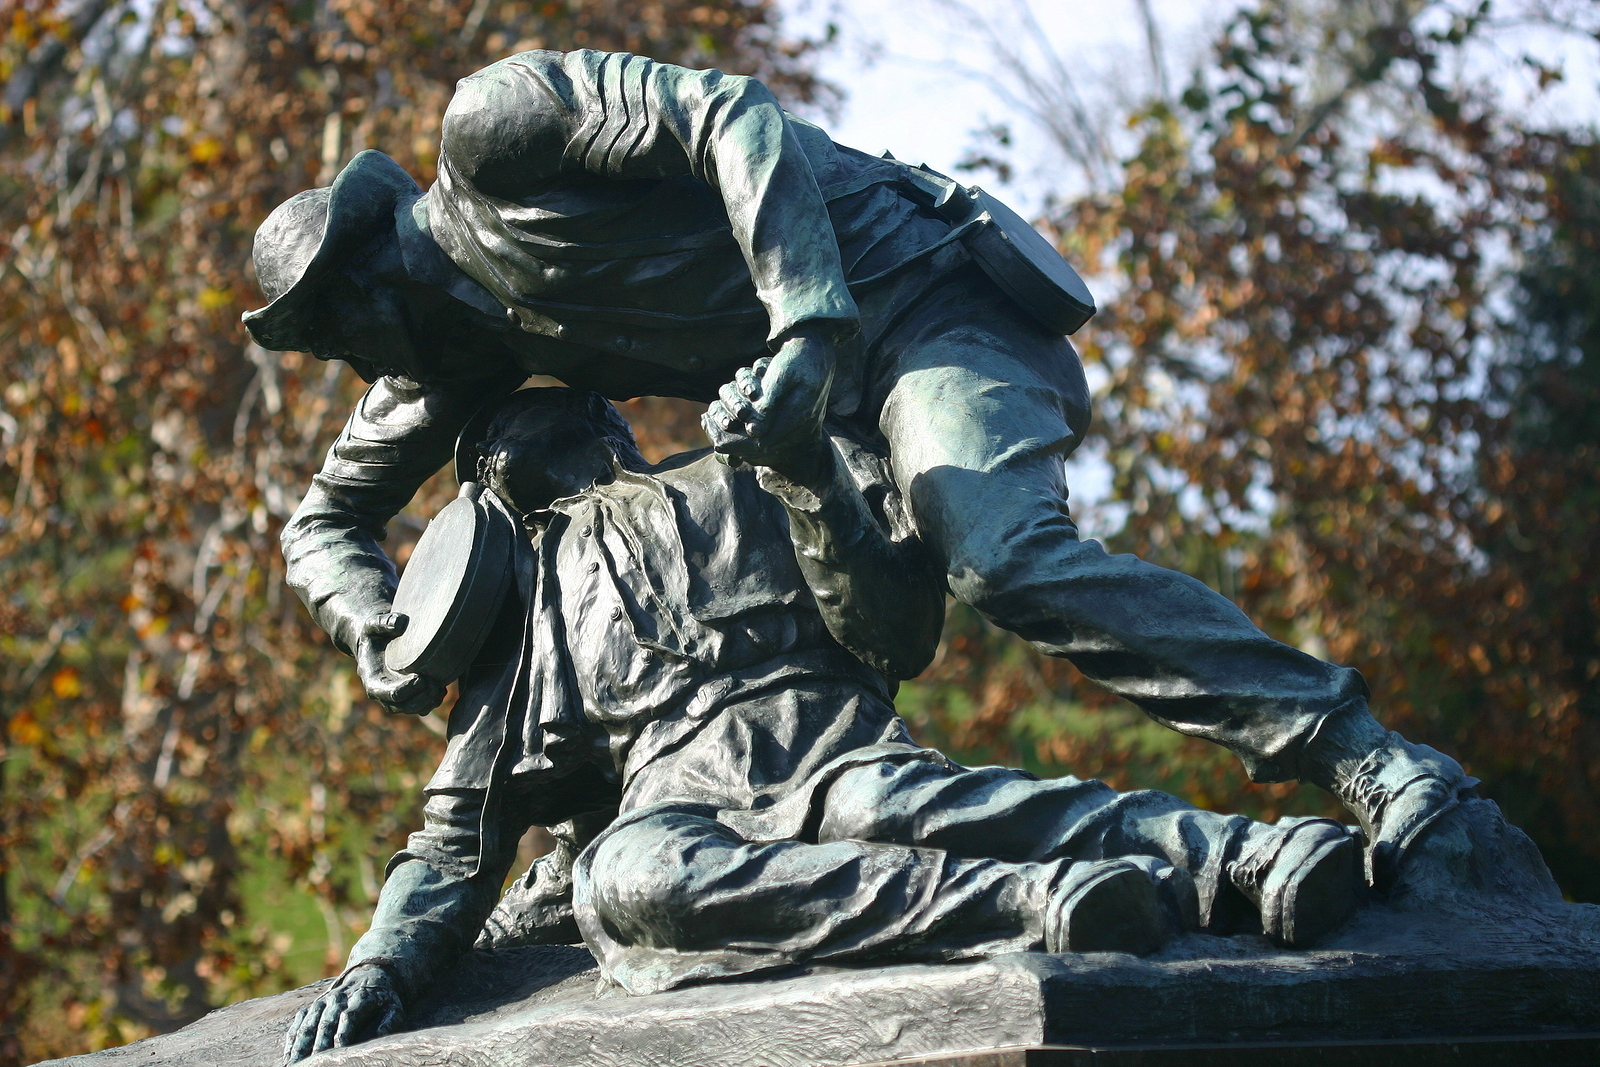 A monument to honor Richard Rowland Kirkland, a Confederate soldier who fought at Fredricksburg, Virginia who left his place of safety to comfort wounded Union soldiers.